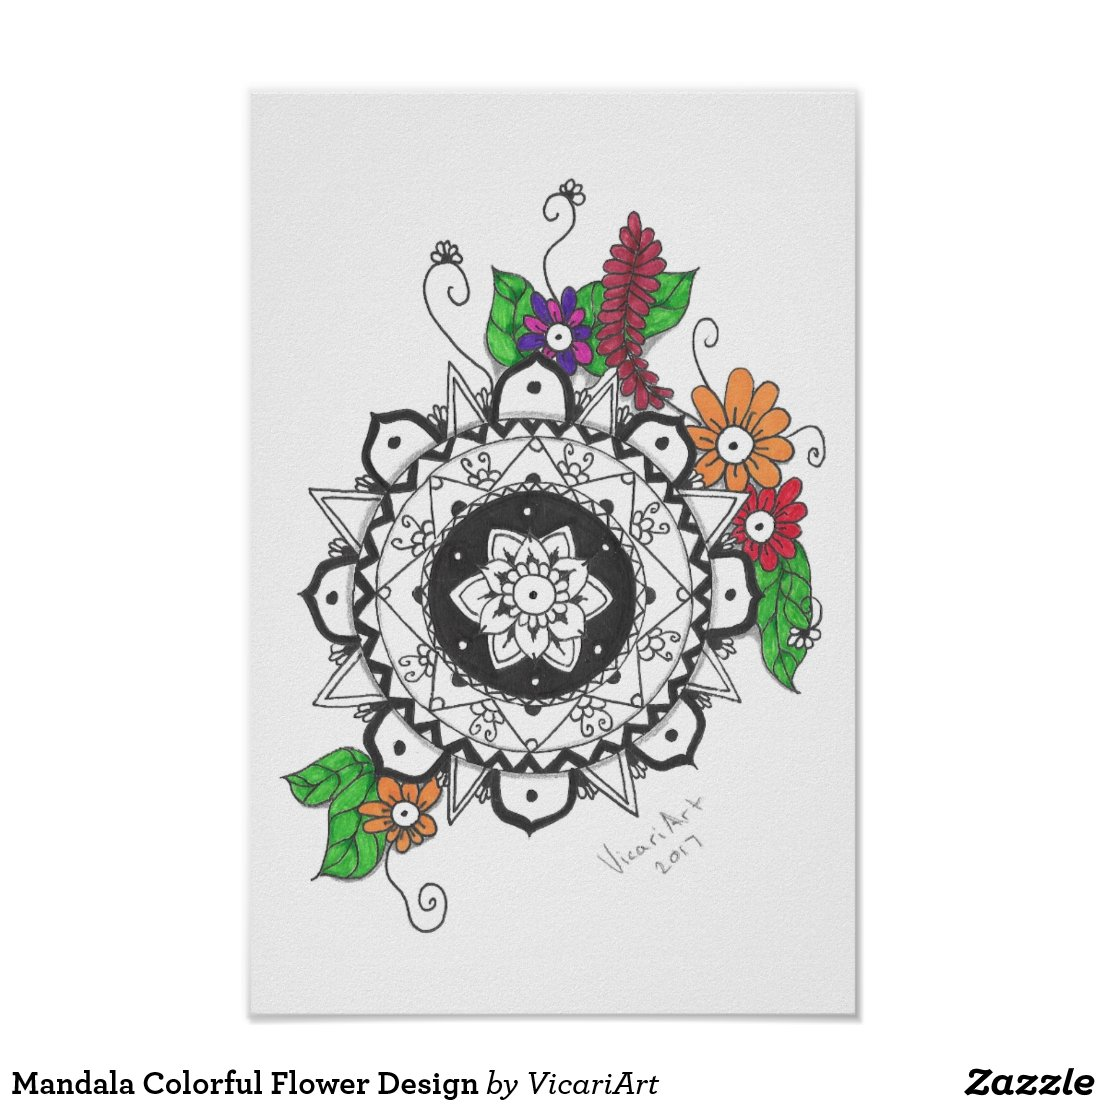 Mandala Colorful Flower Design Poster